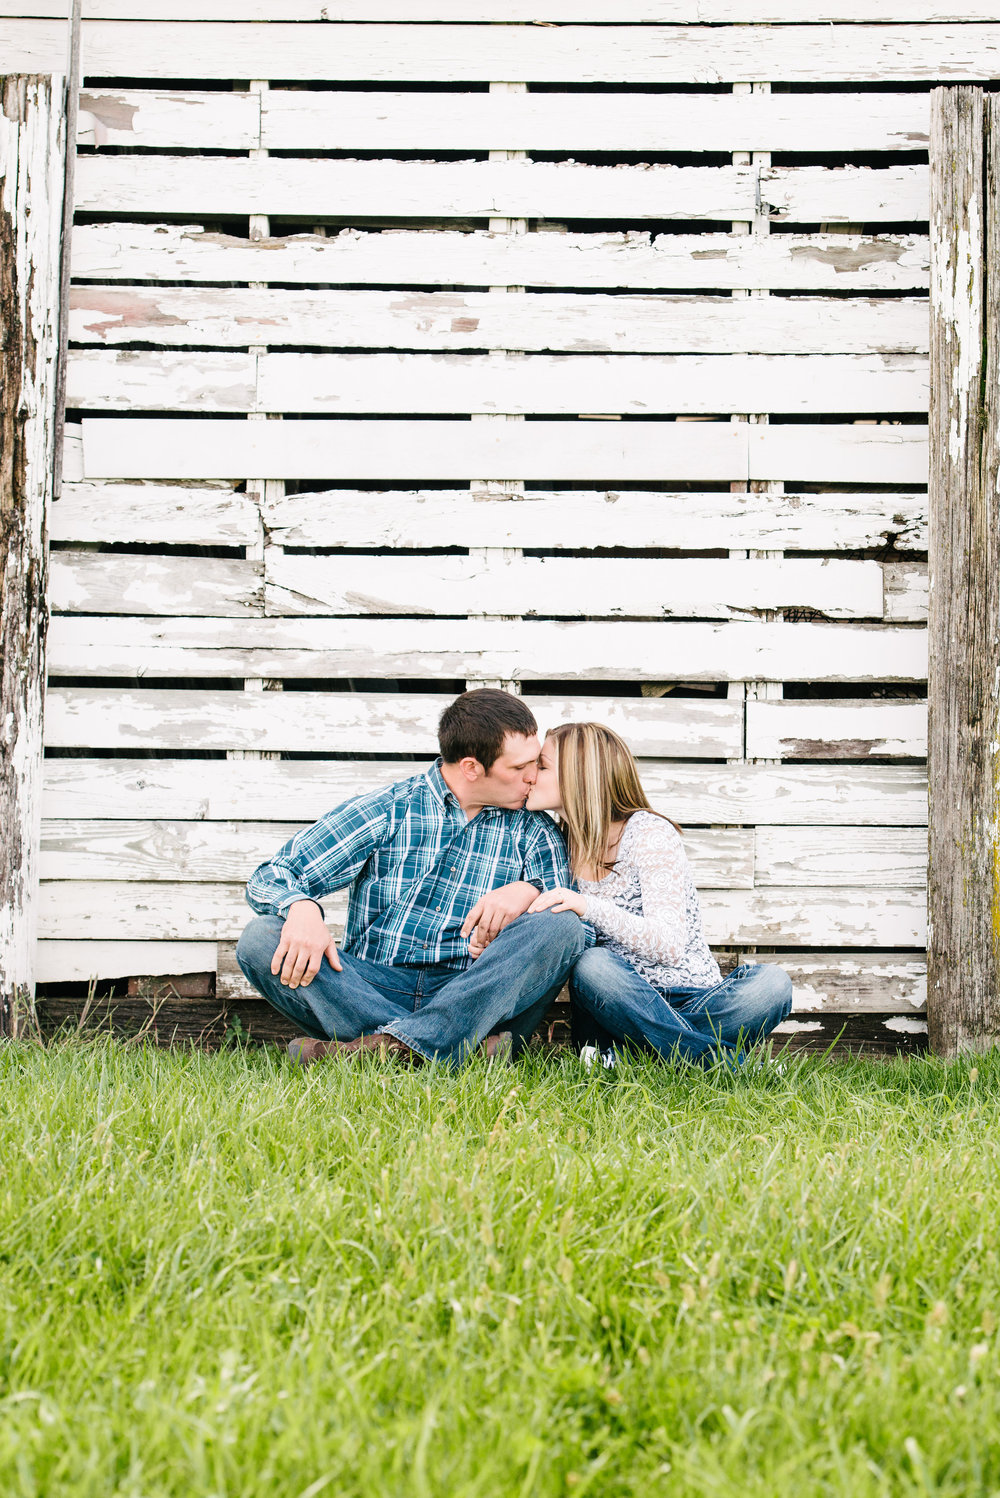 Kissing engagement photos by rustic barn.